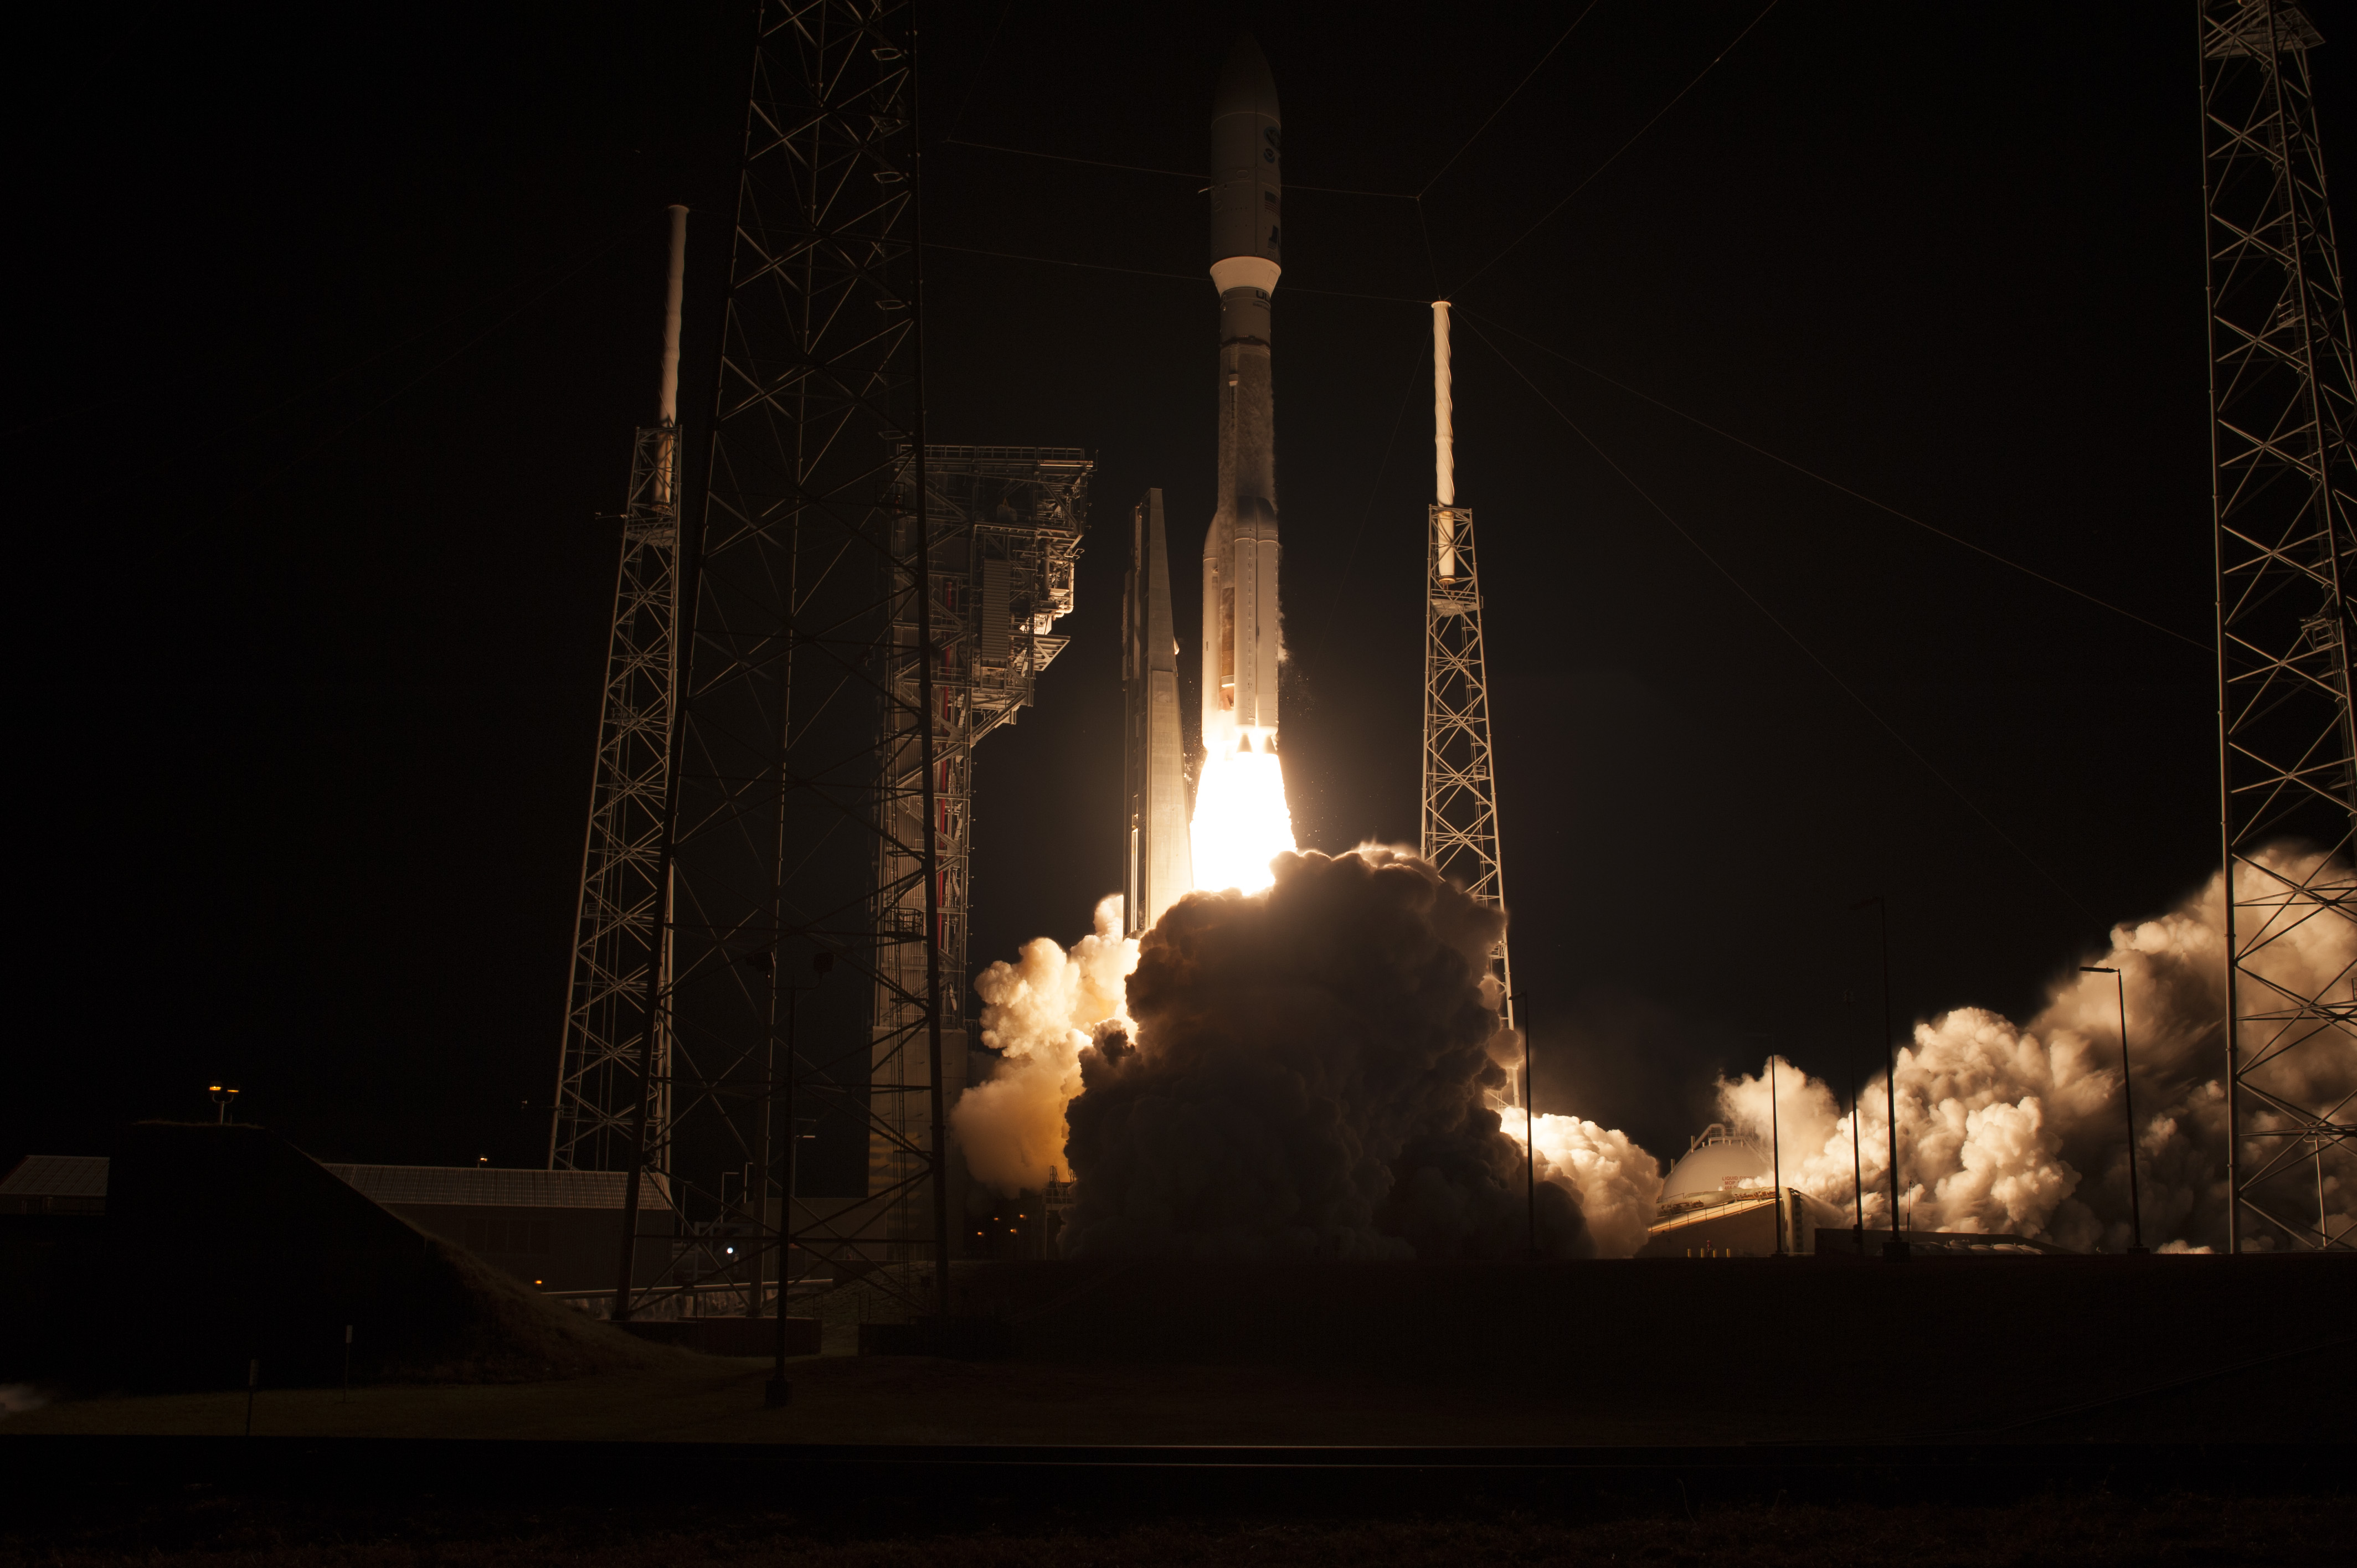 The GOES-R Satellite Launching